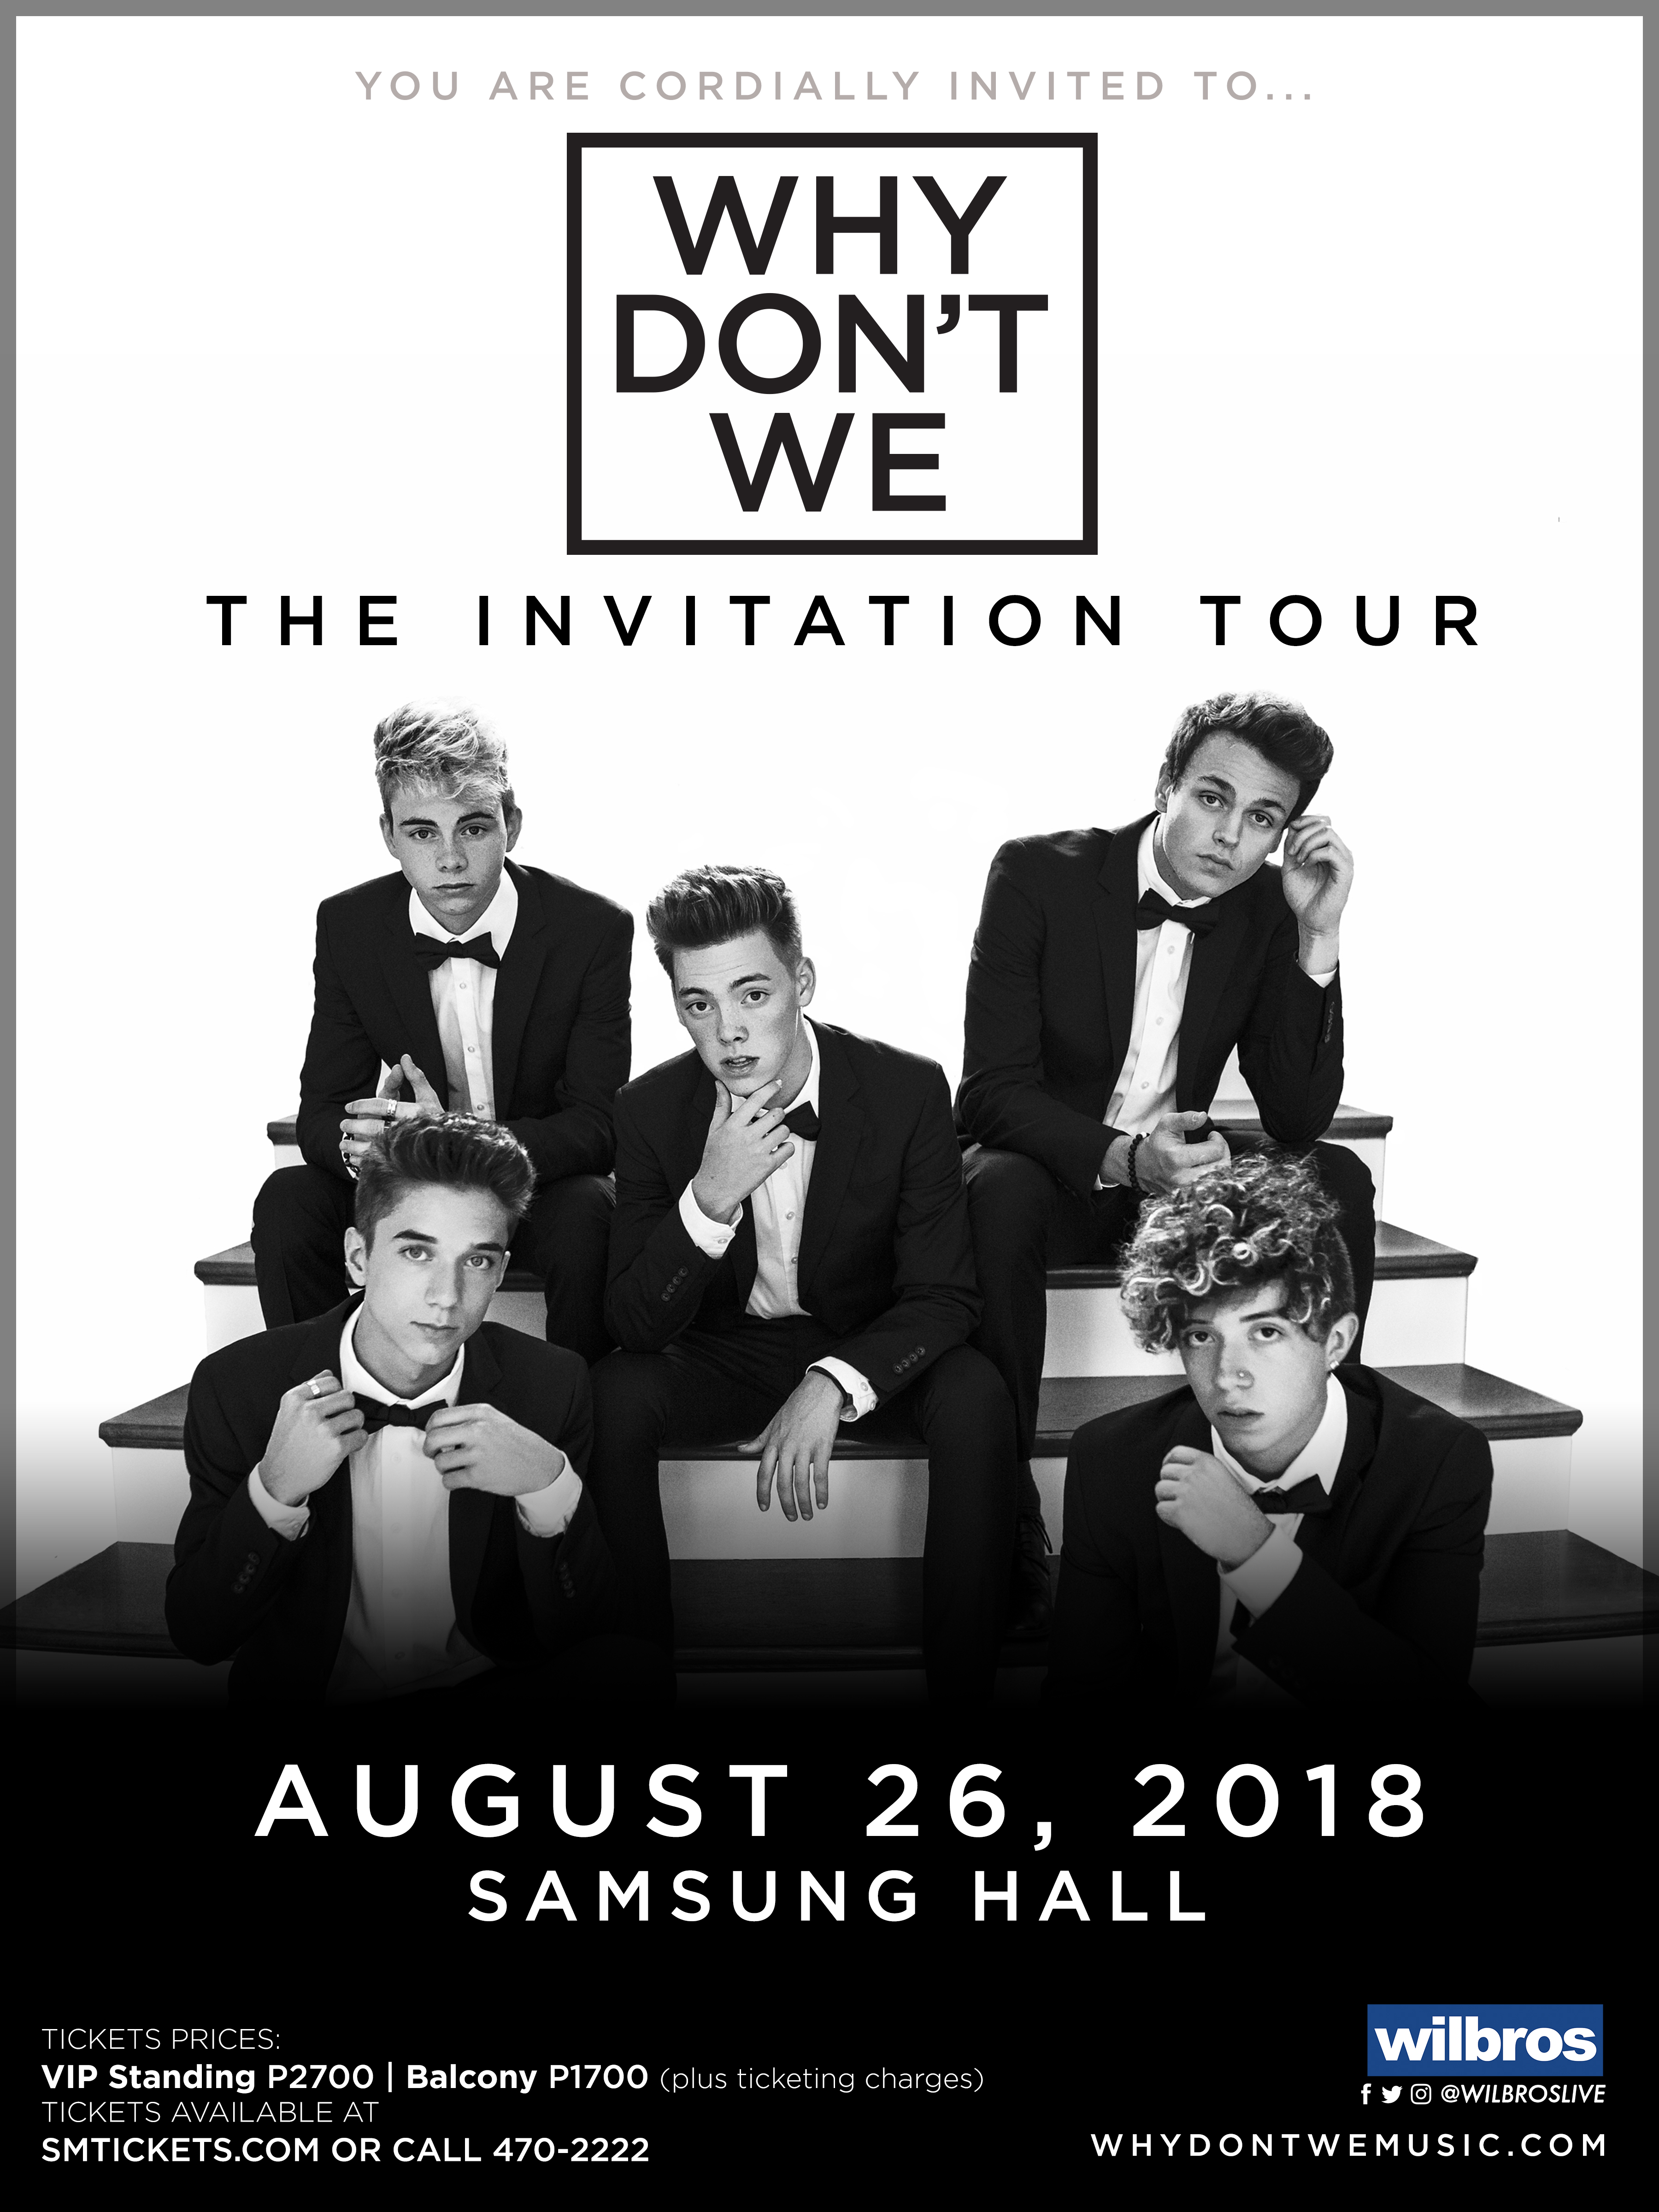 Why Don't We - The Invitation Tour